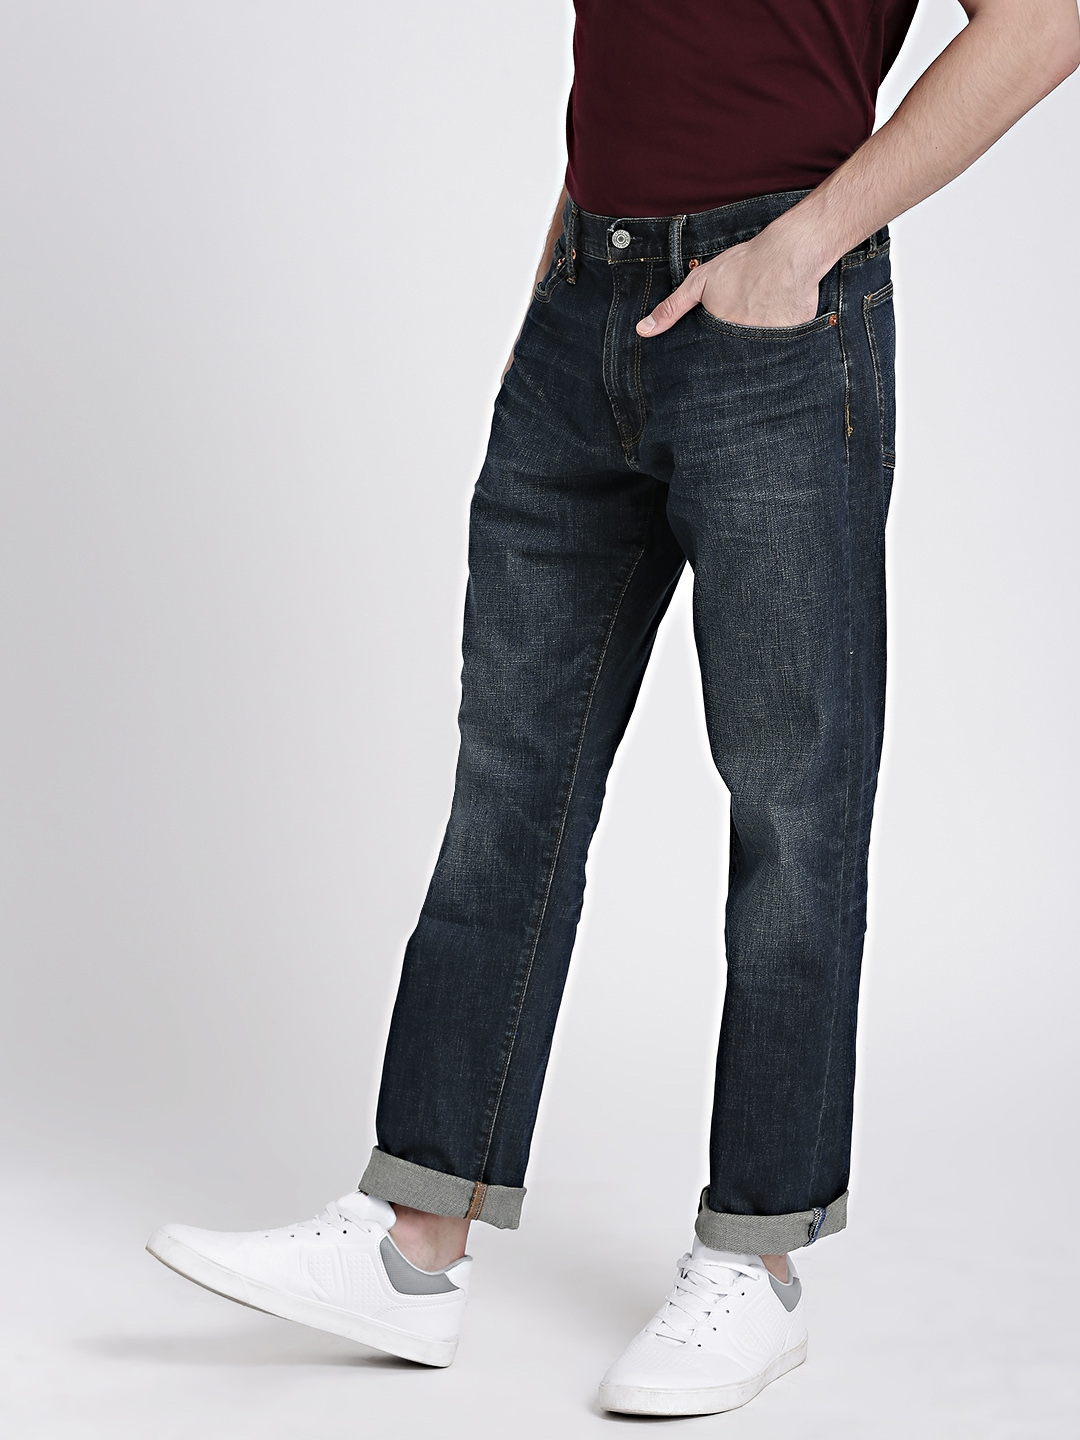 83f2f38e98c Buy GAP Men s Blue Jeans In Athletic Fit With GapFlex - Jeans for ...